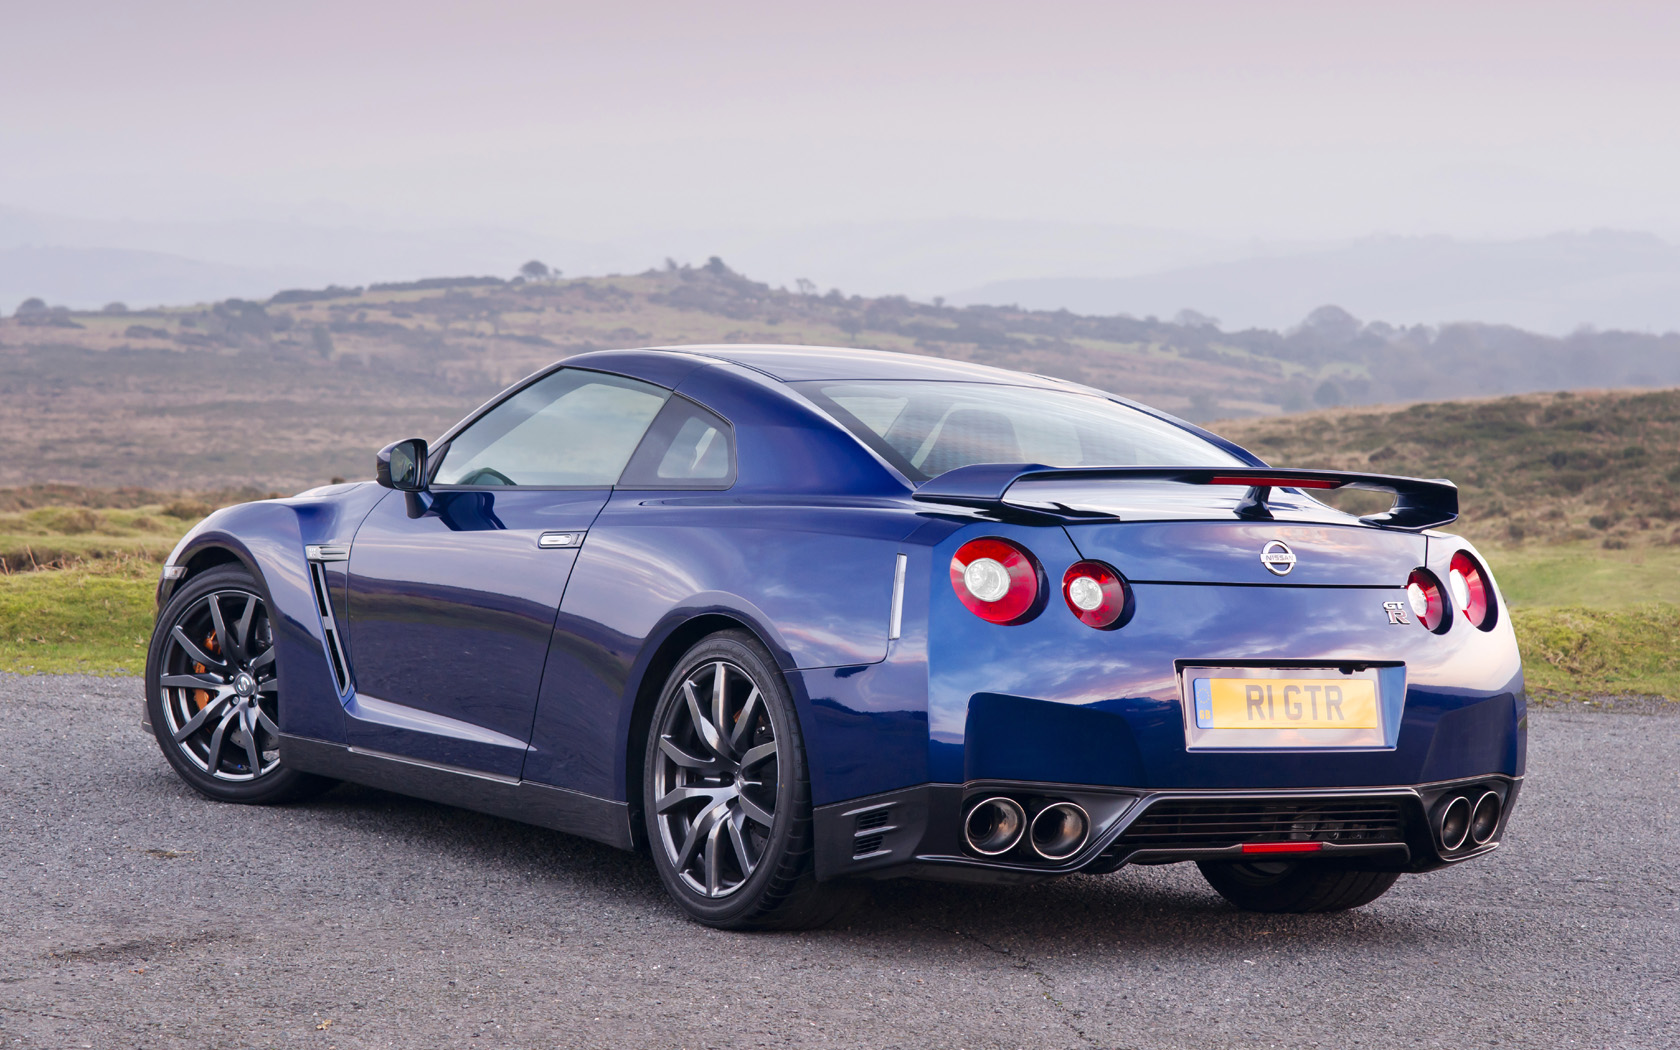 Captivating 2011 Nissan GT R